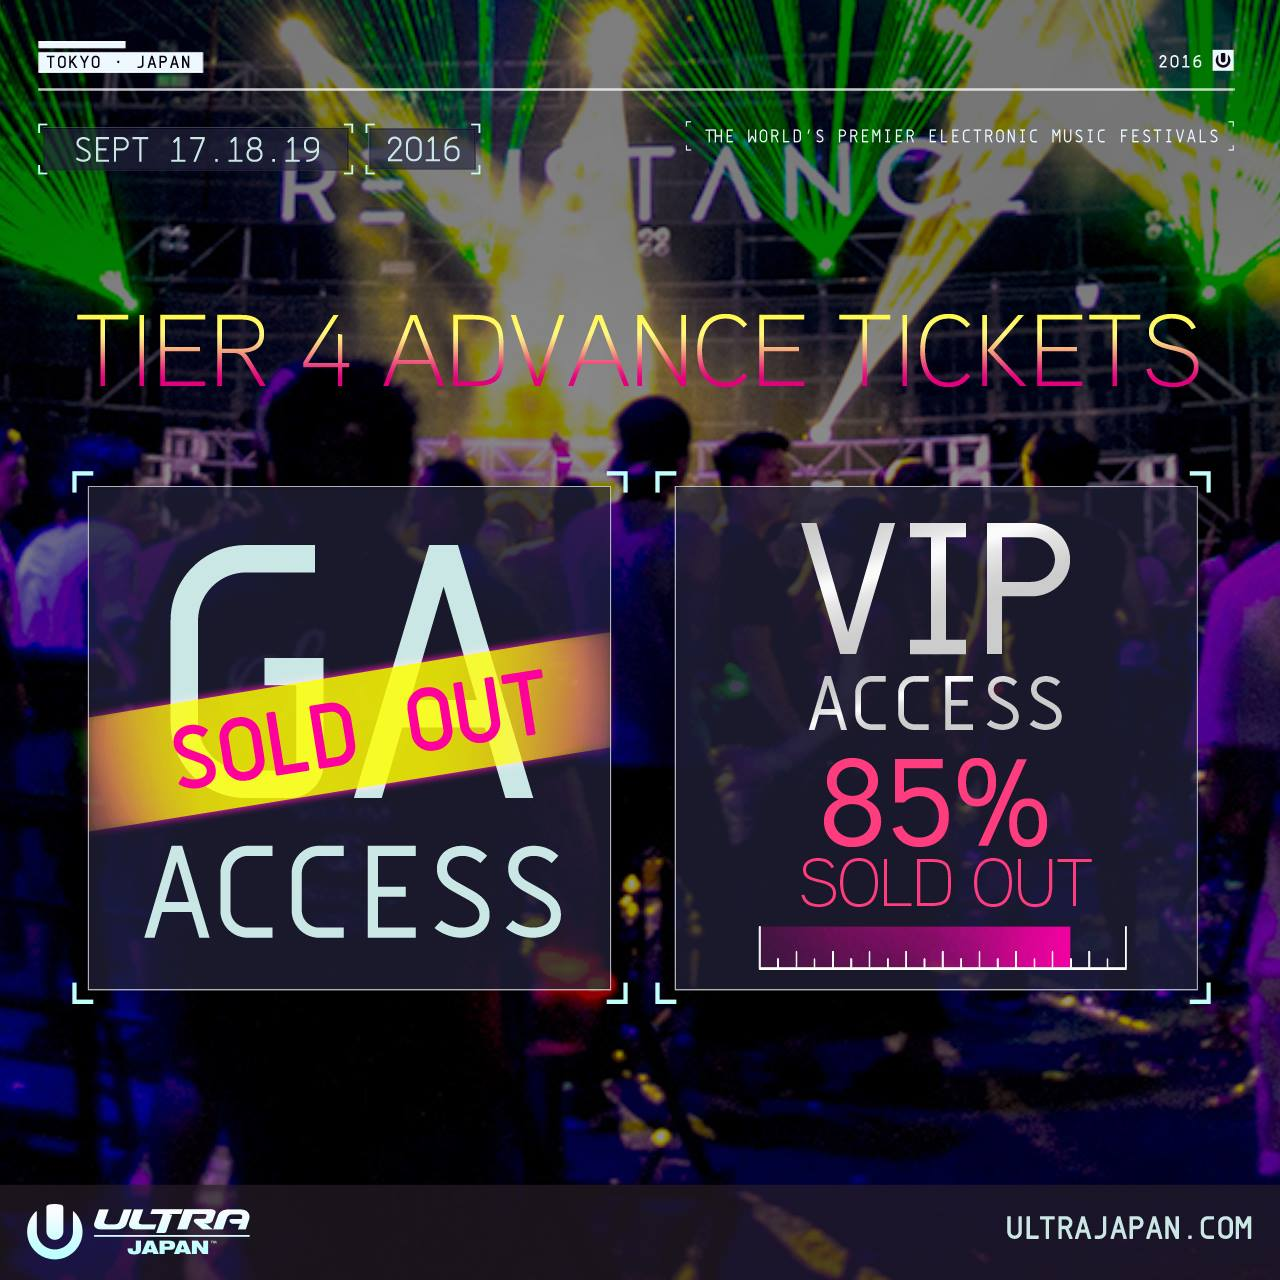 TIER4 GA TICKETS ALL SOLD OUT